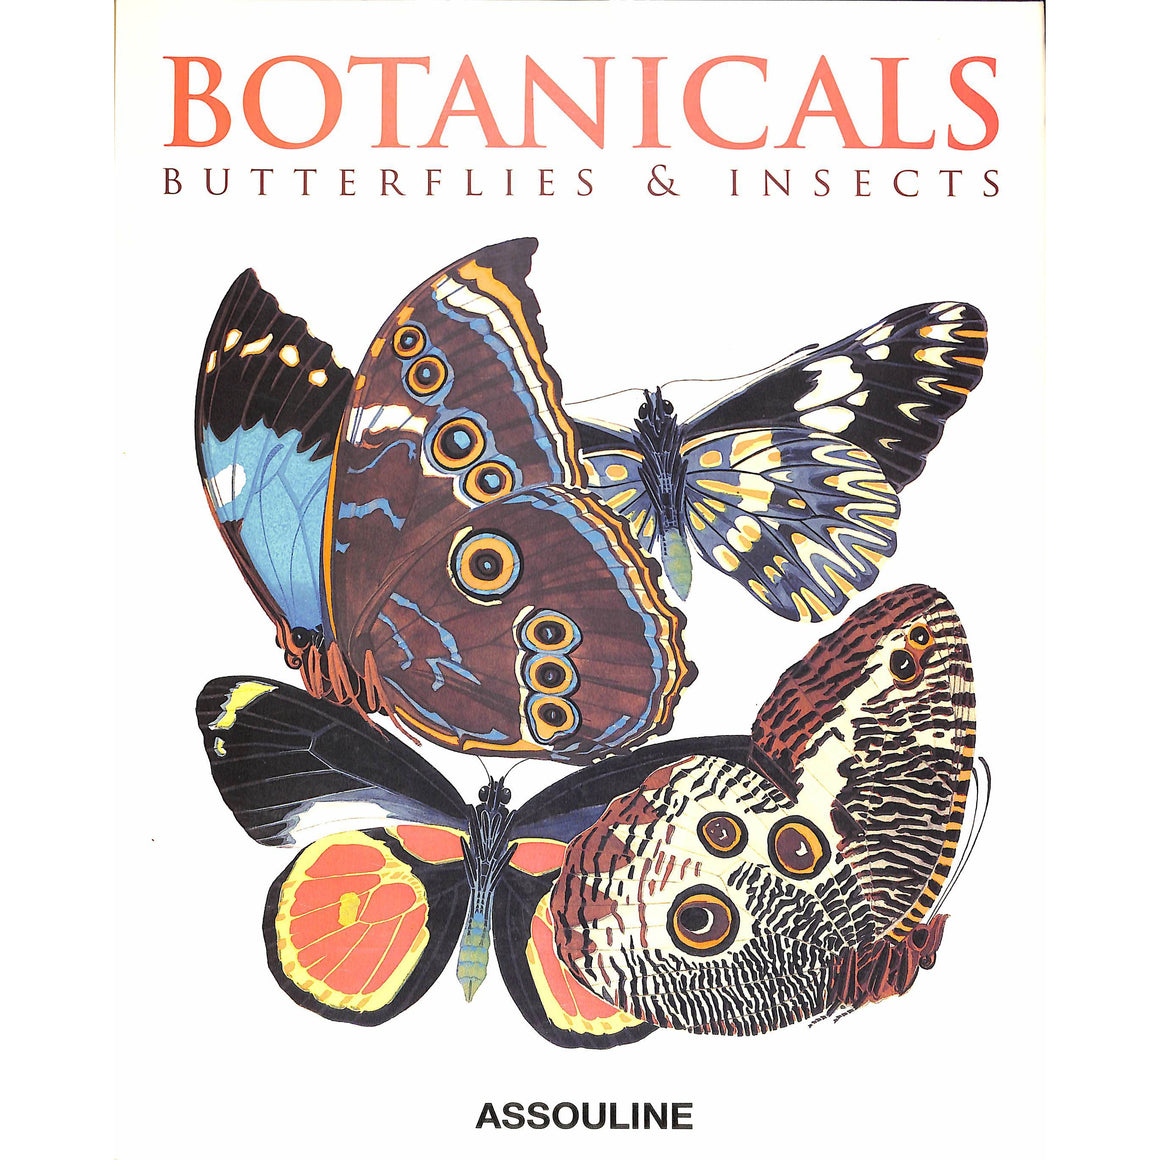 Botanicals: Butterflies & Insects